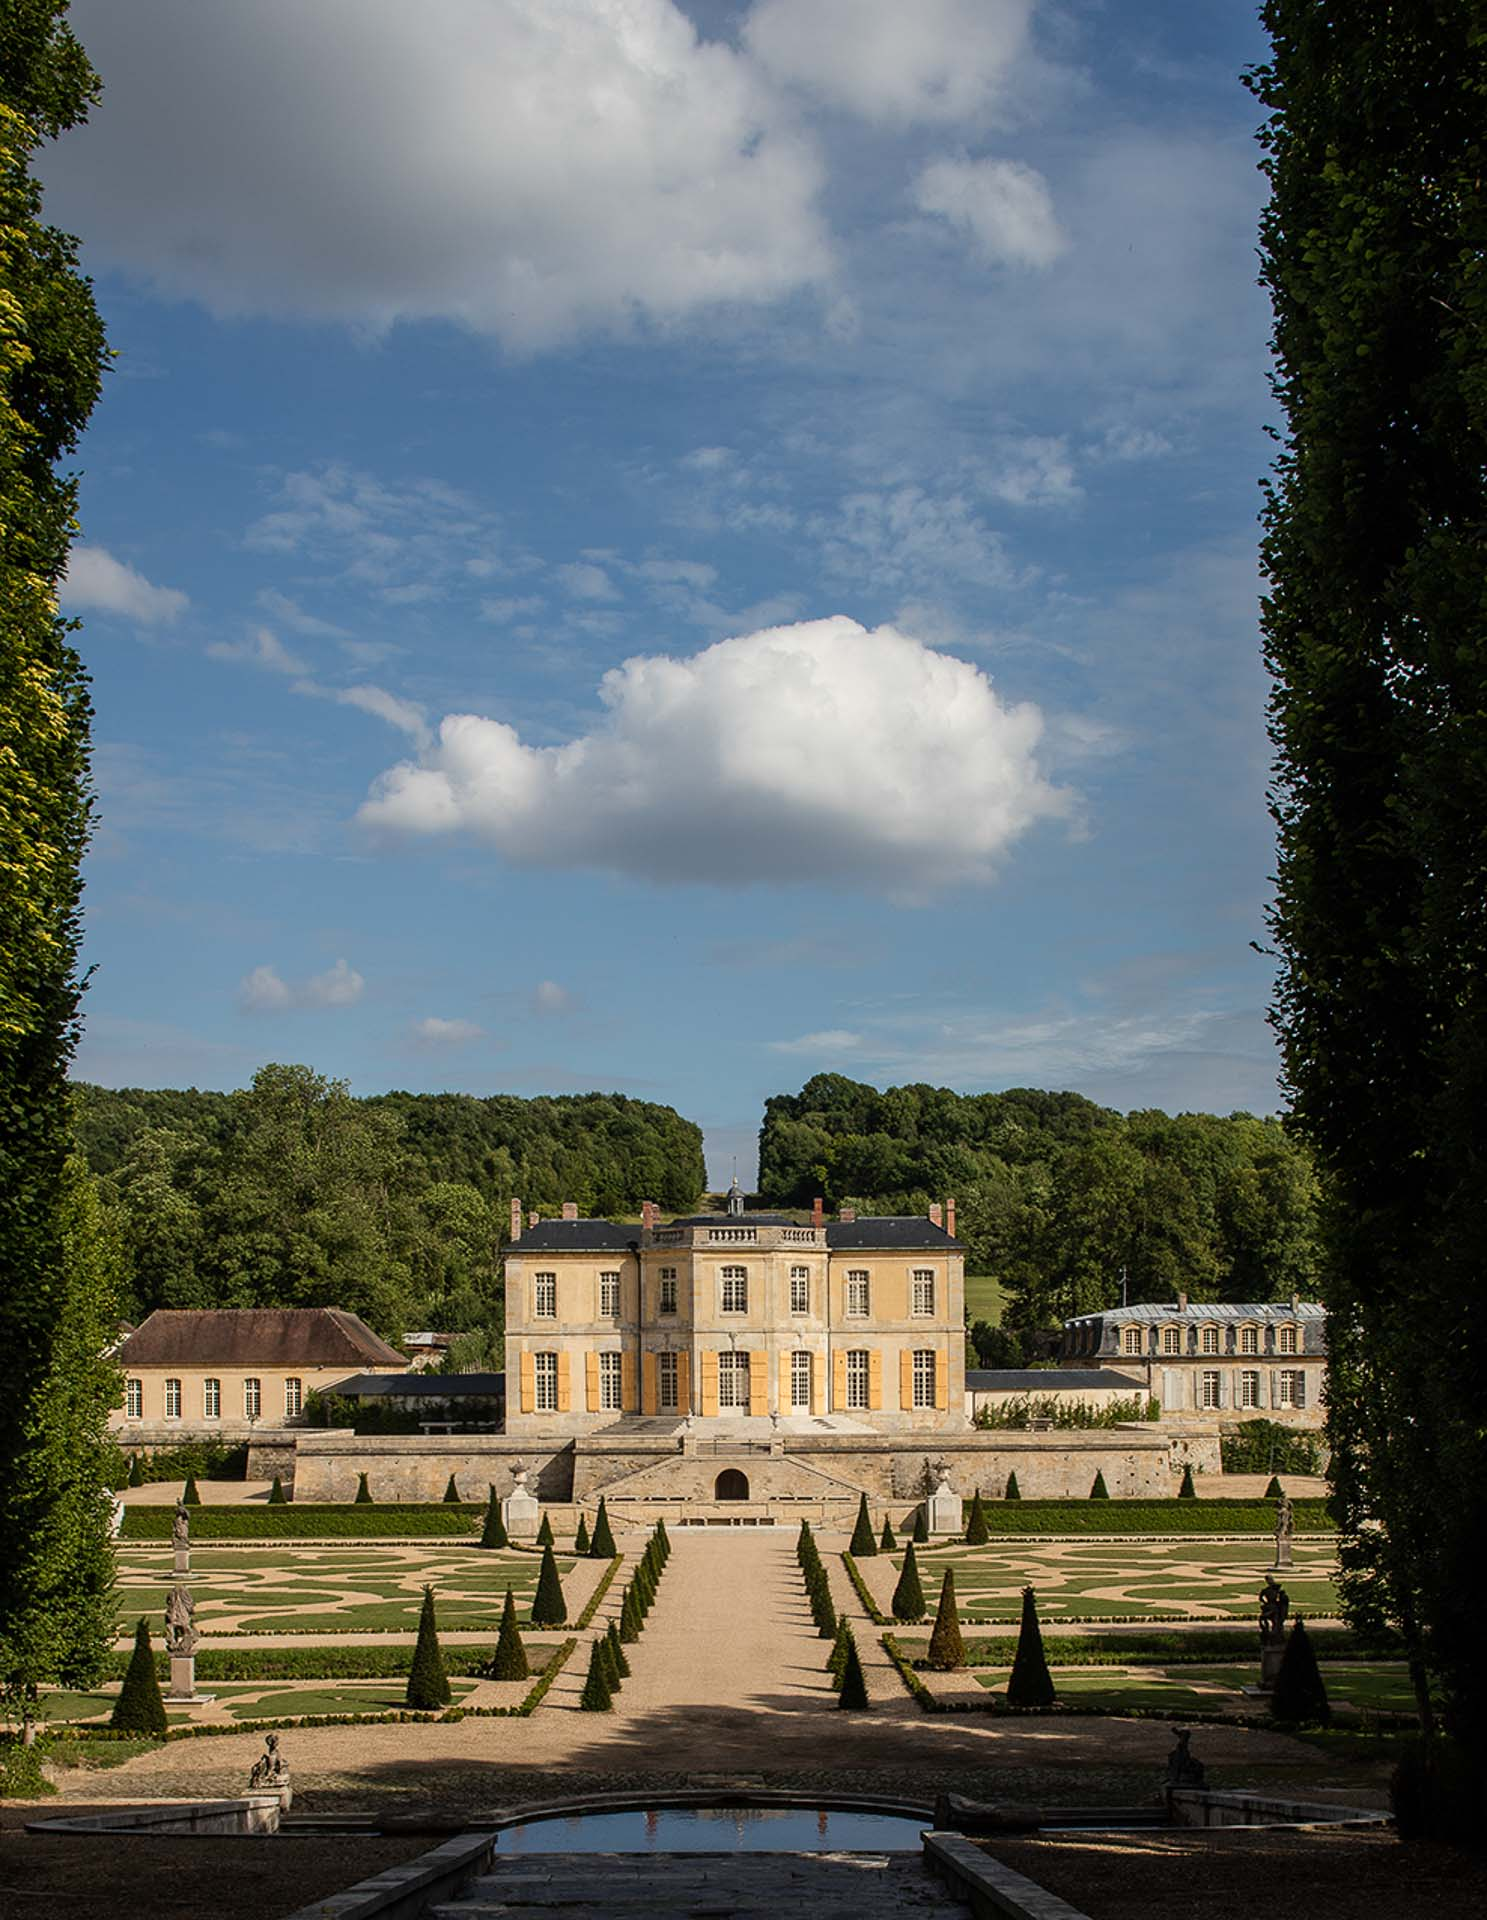 Chateau de Villette luxury property available for exclusive rent rental weddings events departure magazine photo famous facade swimming pool The Heritage Collection